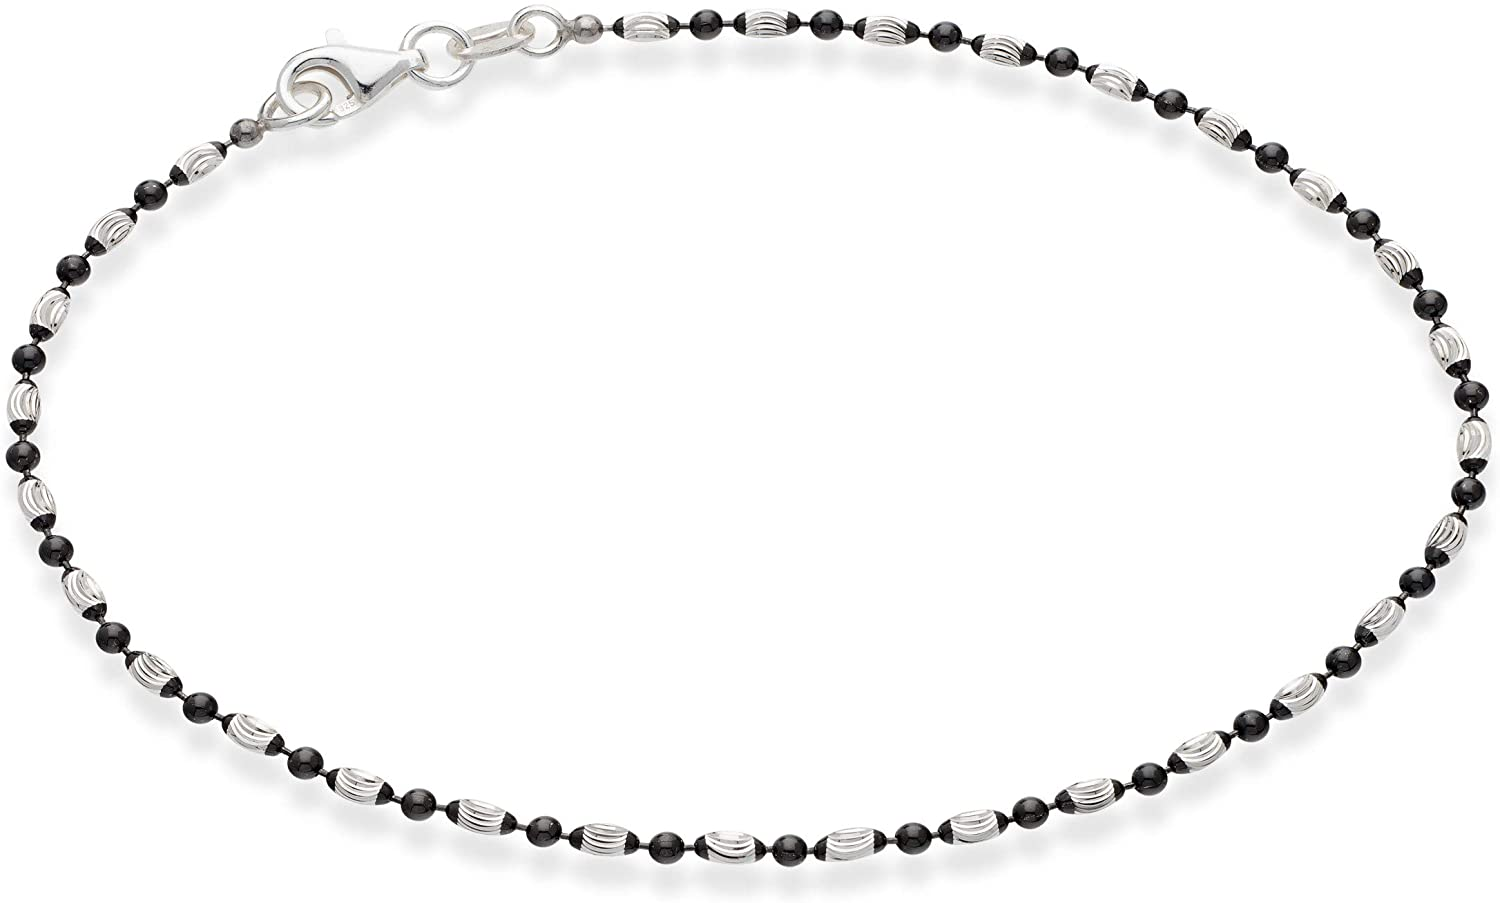 Miabella 925 Sterling Silver Diamond-Cut Oval and Round Bead Ball Chain Anklet Ankle Bracelet for Women Teen Girls, 9, 10 Inch Made in Italy